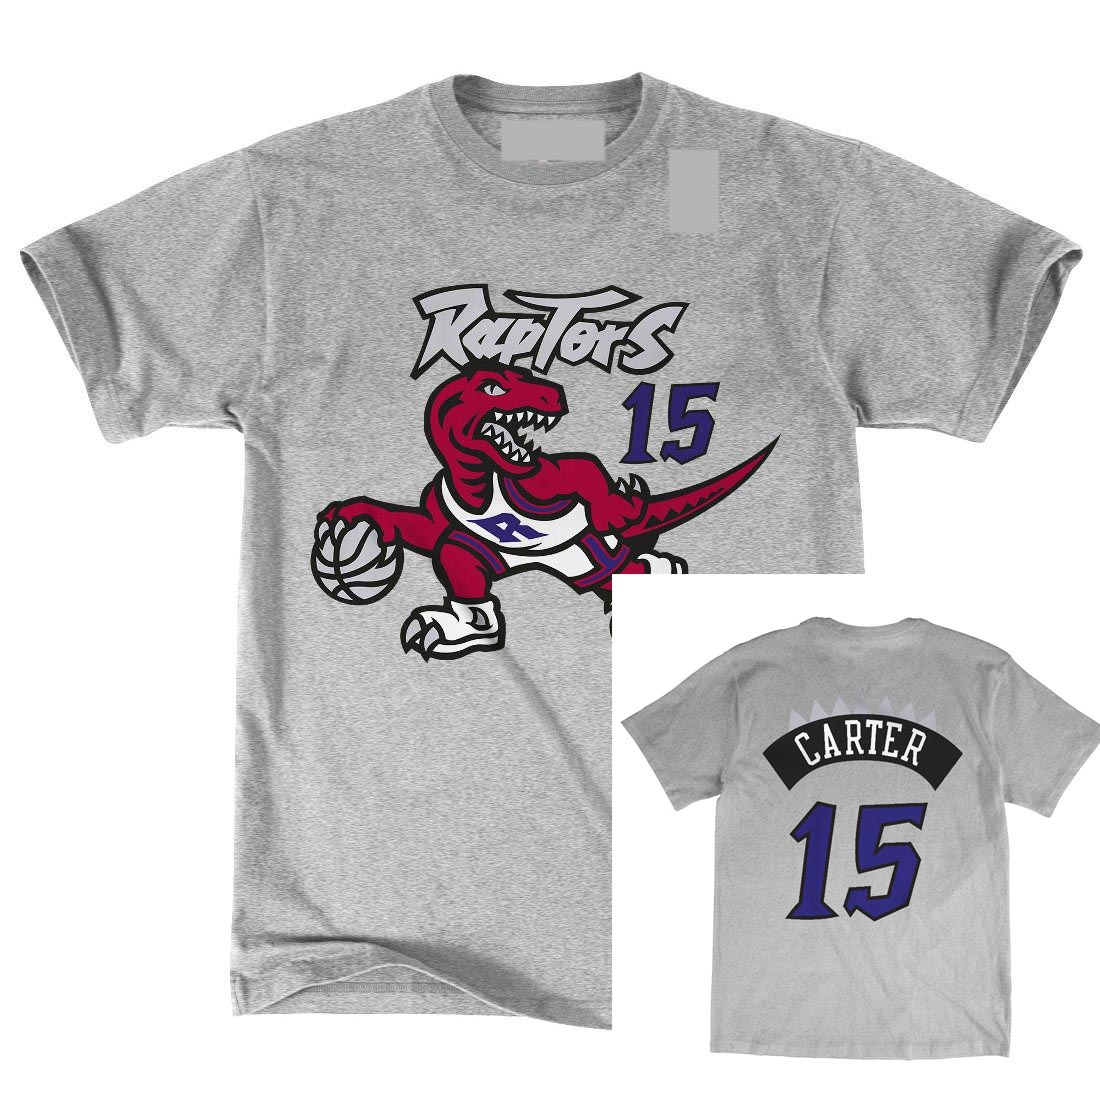 Toronto T Shirt Raptors Carter Hwc Retro Name and Number T shirt 2018 New 100 Cotton Top Quality Top Tee Plus Size Harajuku in T Shirts from Men 39 s Clothing